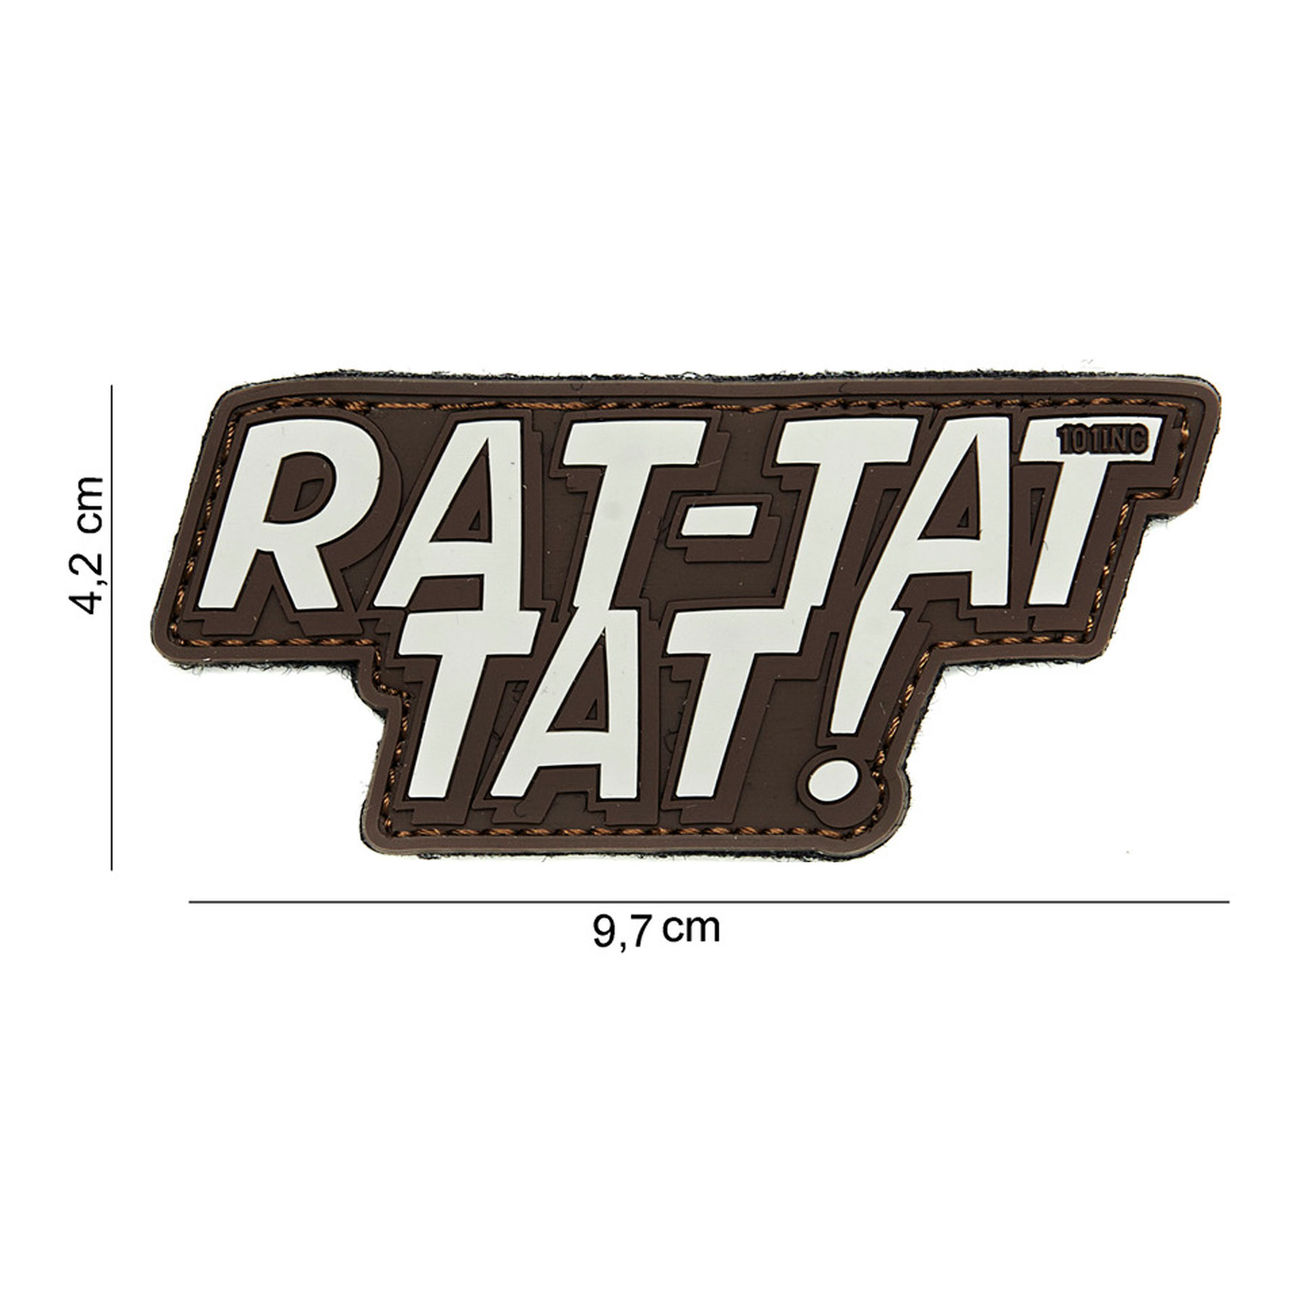 101 INC. 3D Rubber Patch Rat-tat tat braun/sand 0